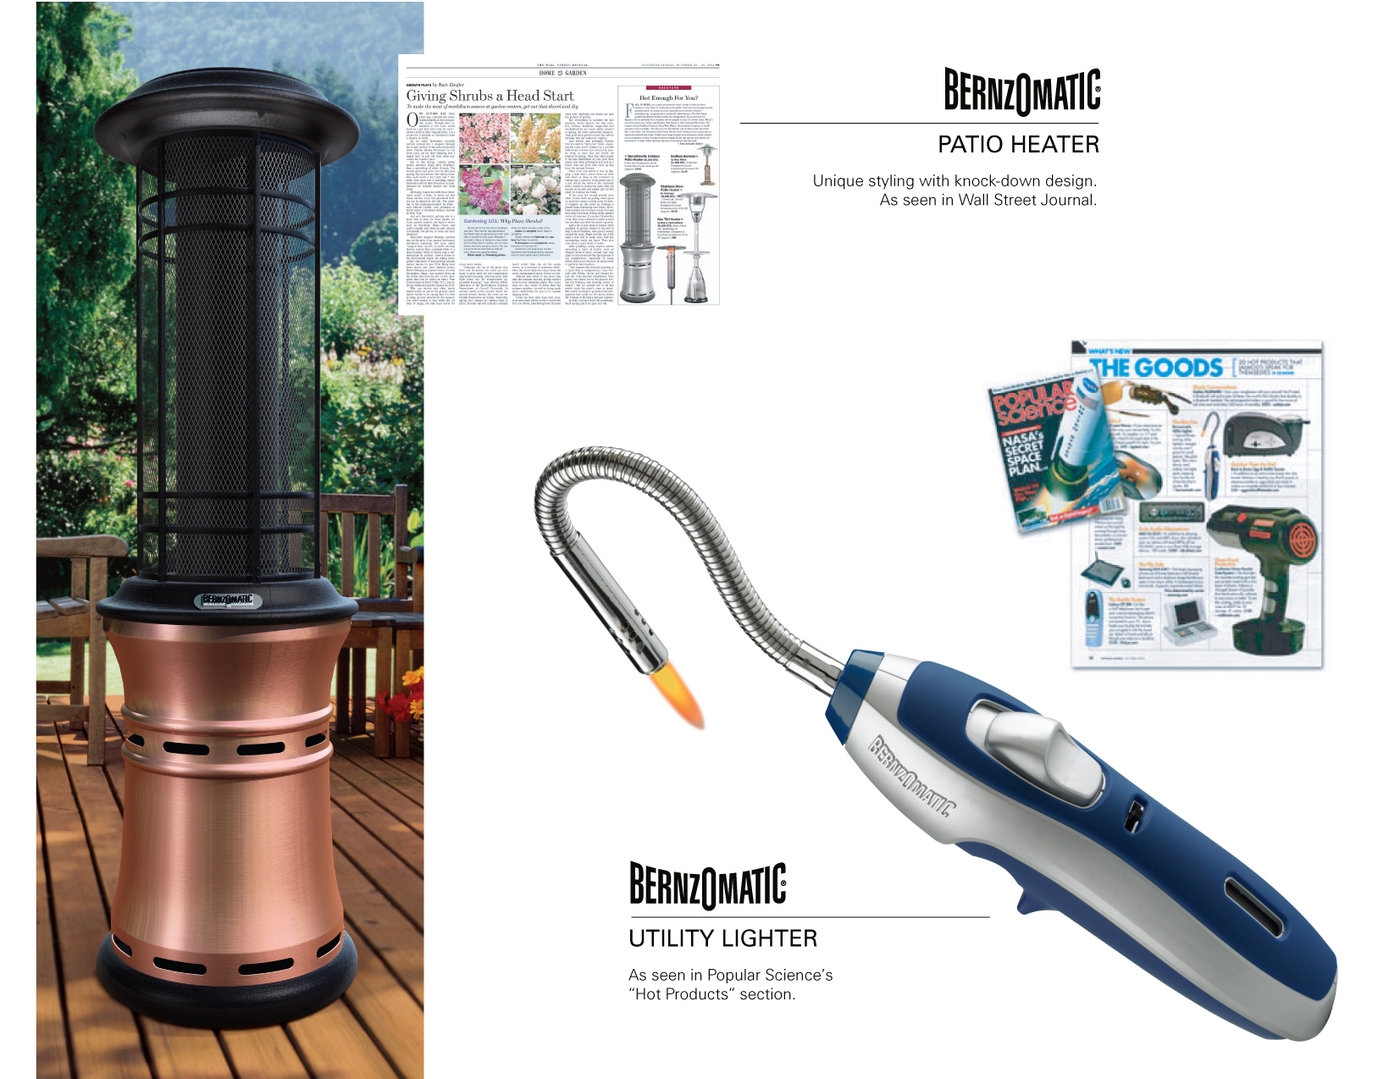 bernzomatic patio heater hgtv backyard giveaway